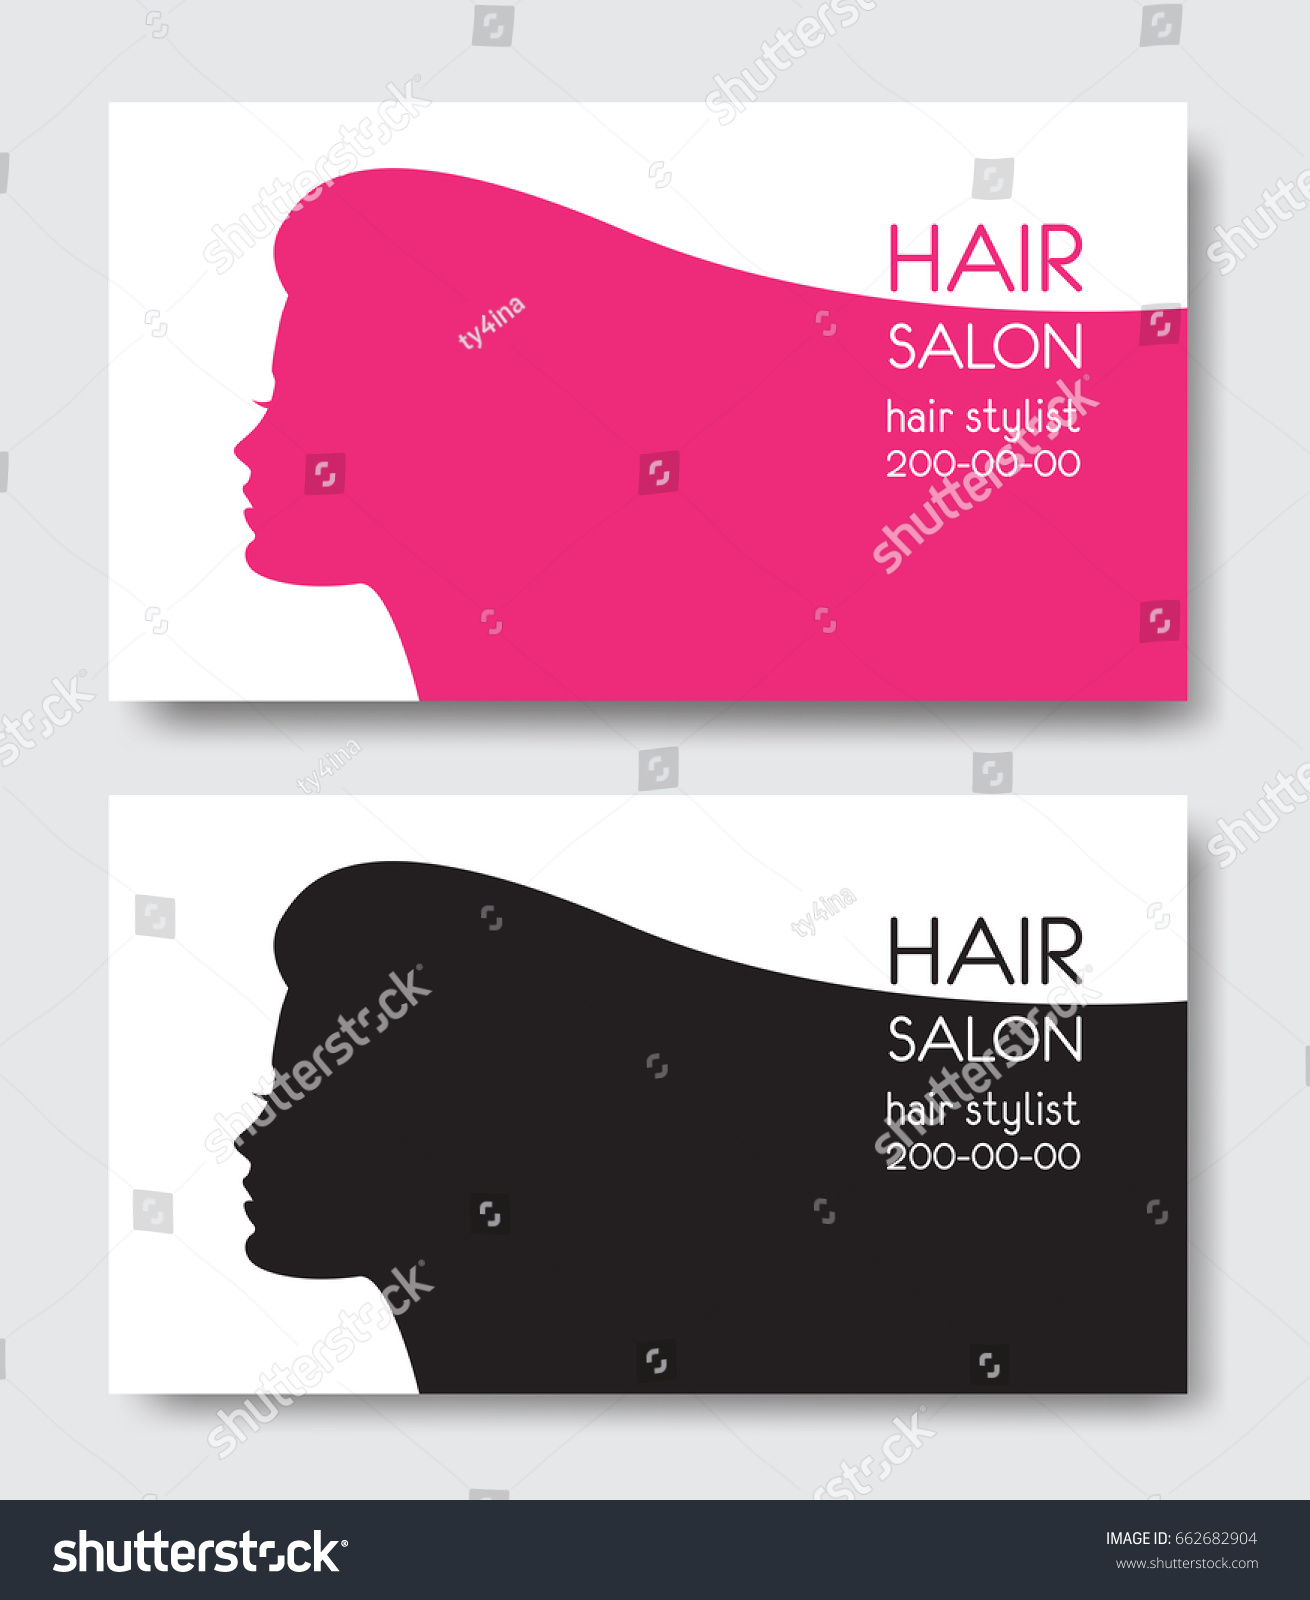 Hair salon business card templates beautiful stock vector hair salon business card templates with beautiful woman face silhouette silhouette of woman with long magicingreecefo Images